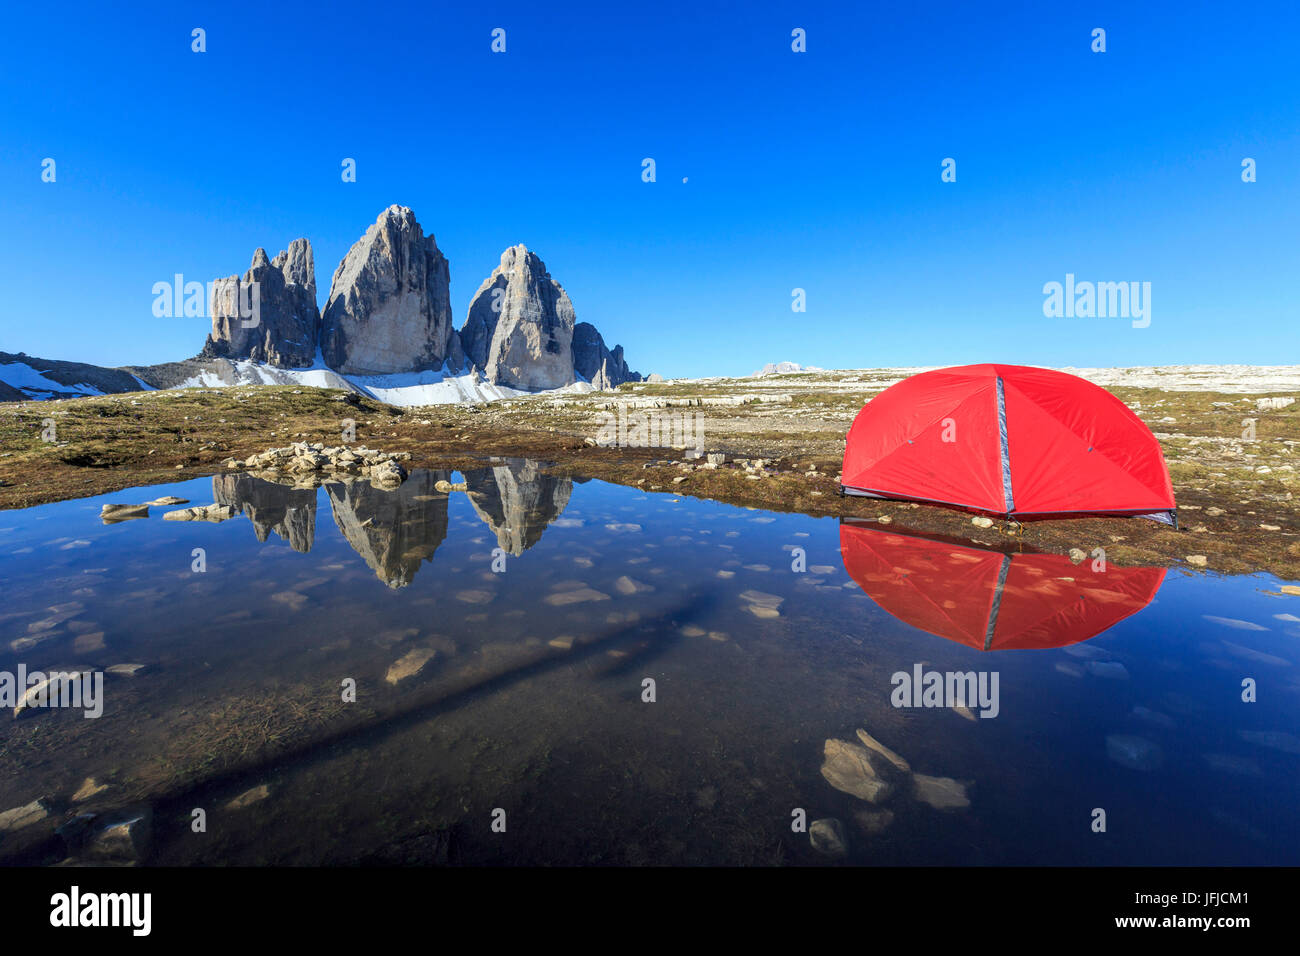 Hikers tent in front of the Three Peaks of Lavaredo at sunrise Sesto Dolomites Trentino Alto Adige Italy Europe & Hikers tent in front of the Three Peaks of Lavaredo at sunrise ...